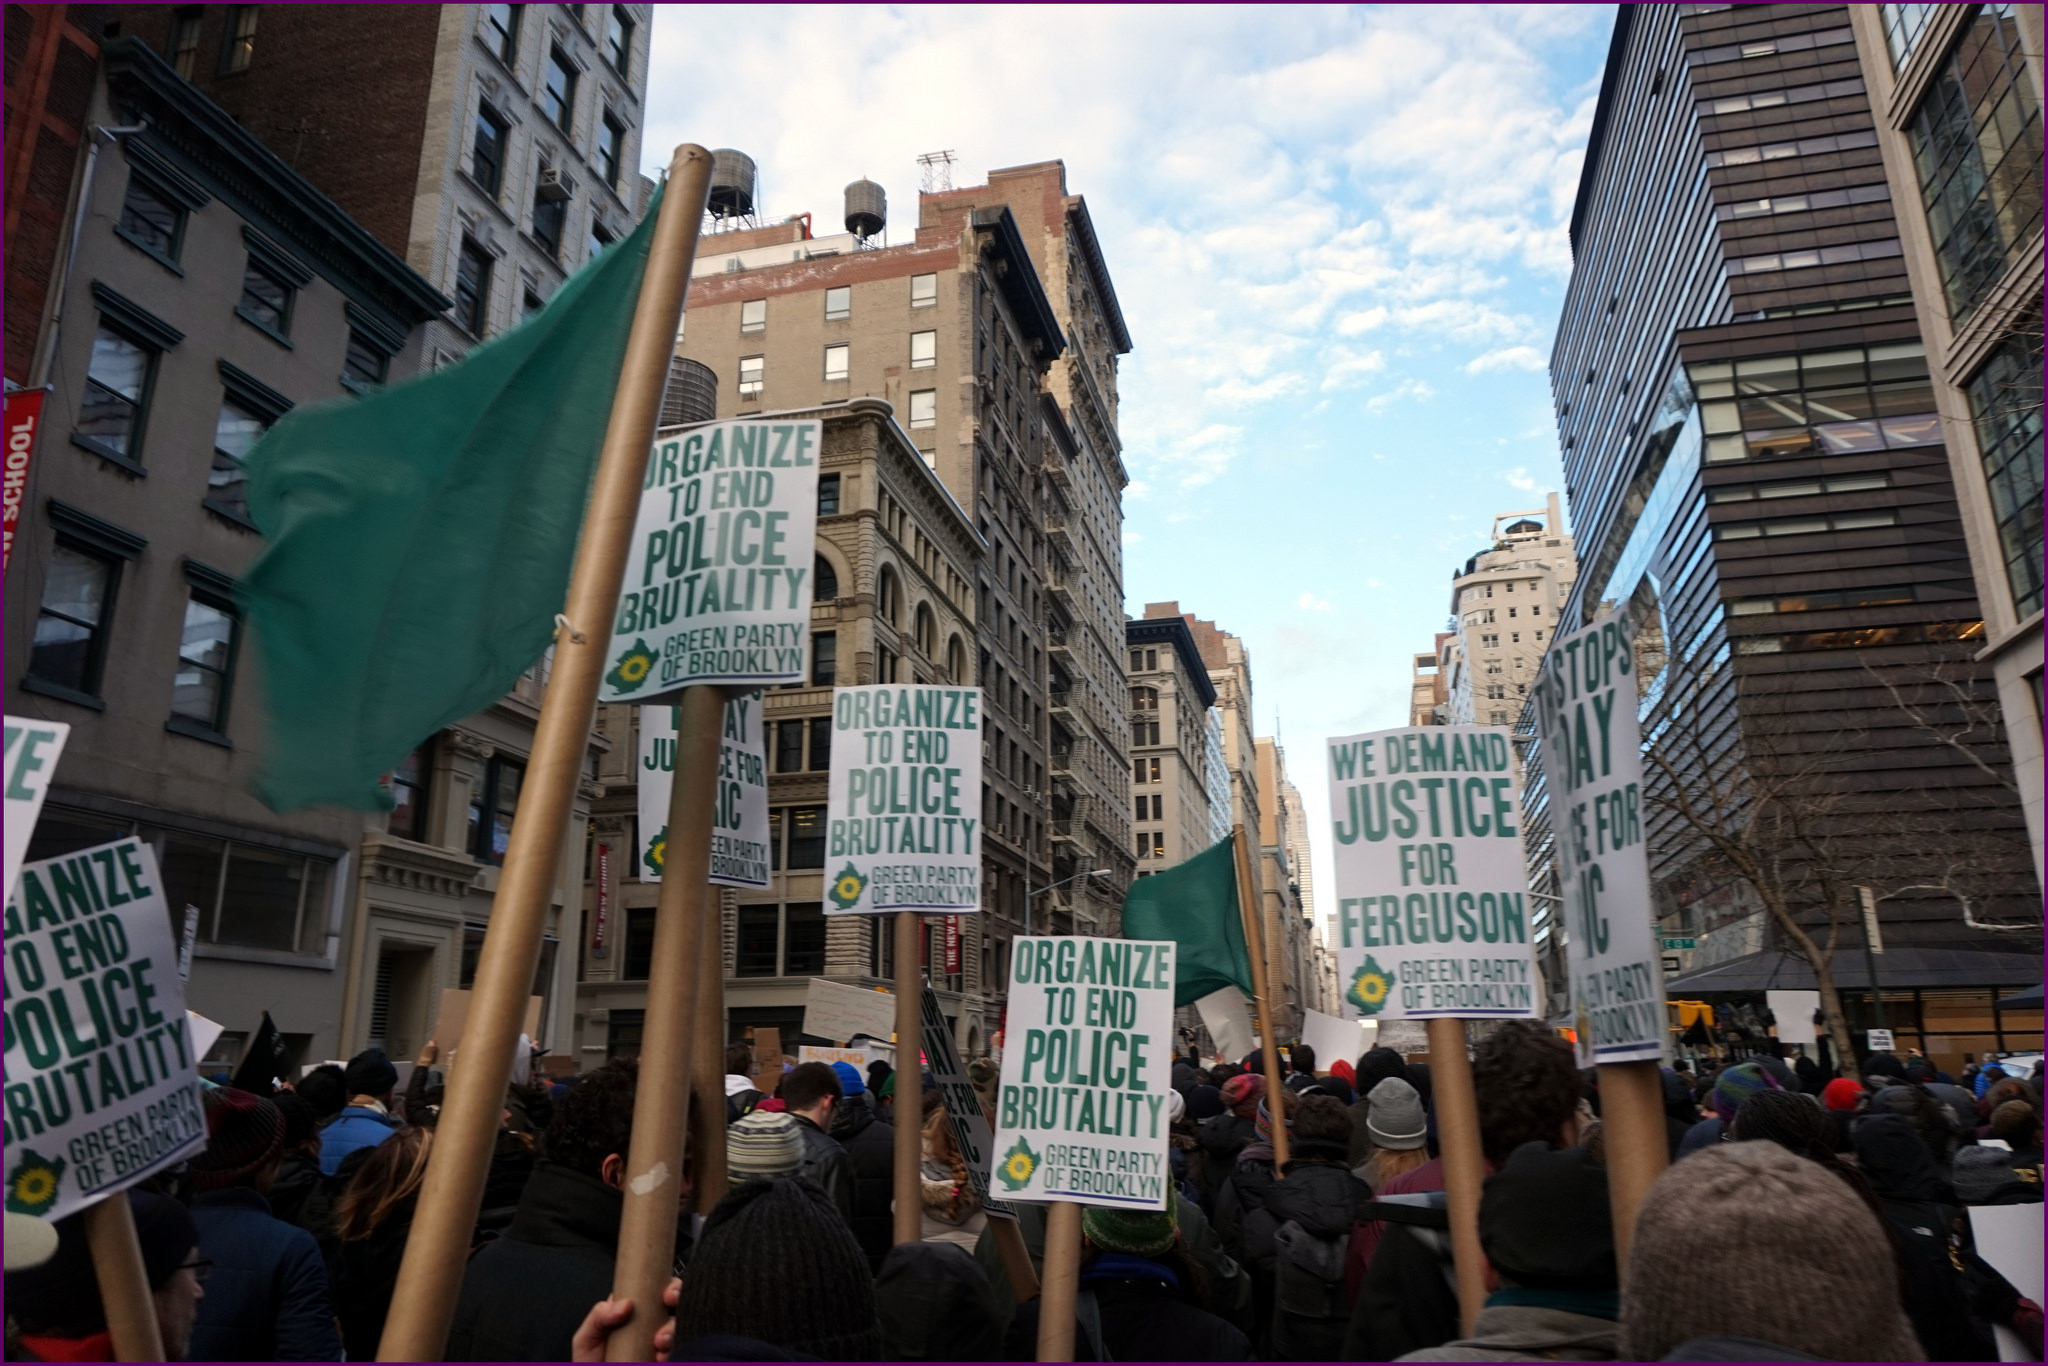 Placards above the crowd at a march in New York against police brutality